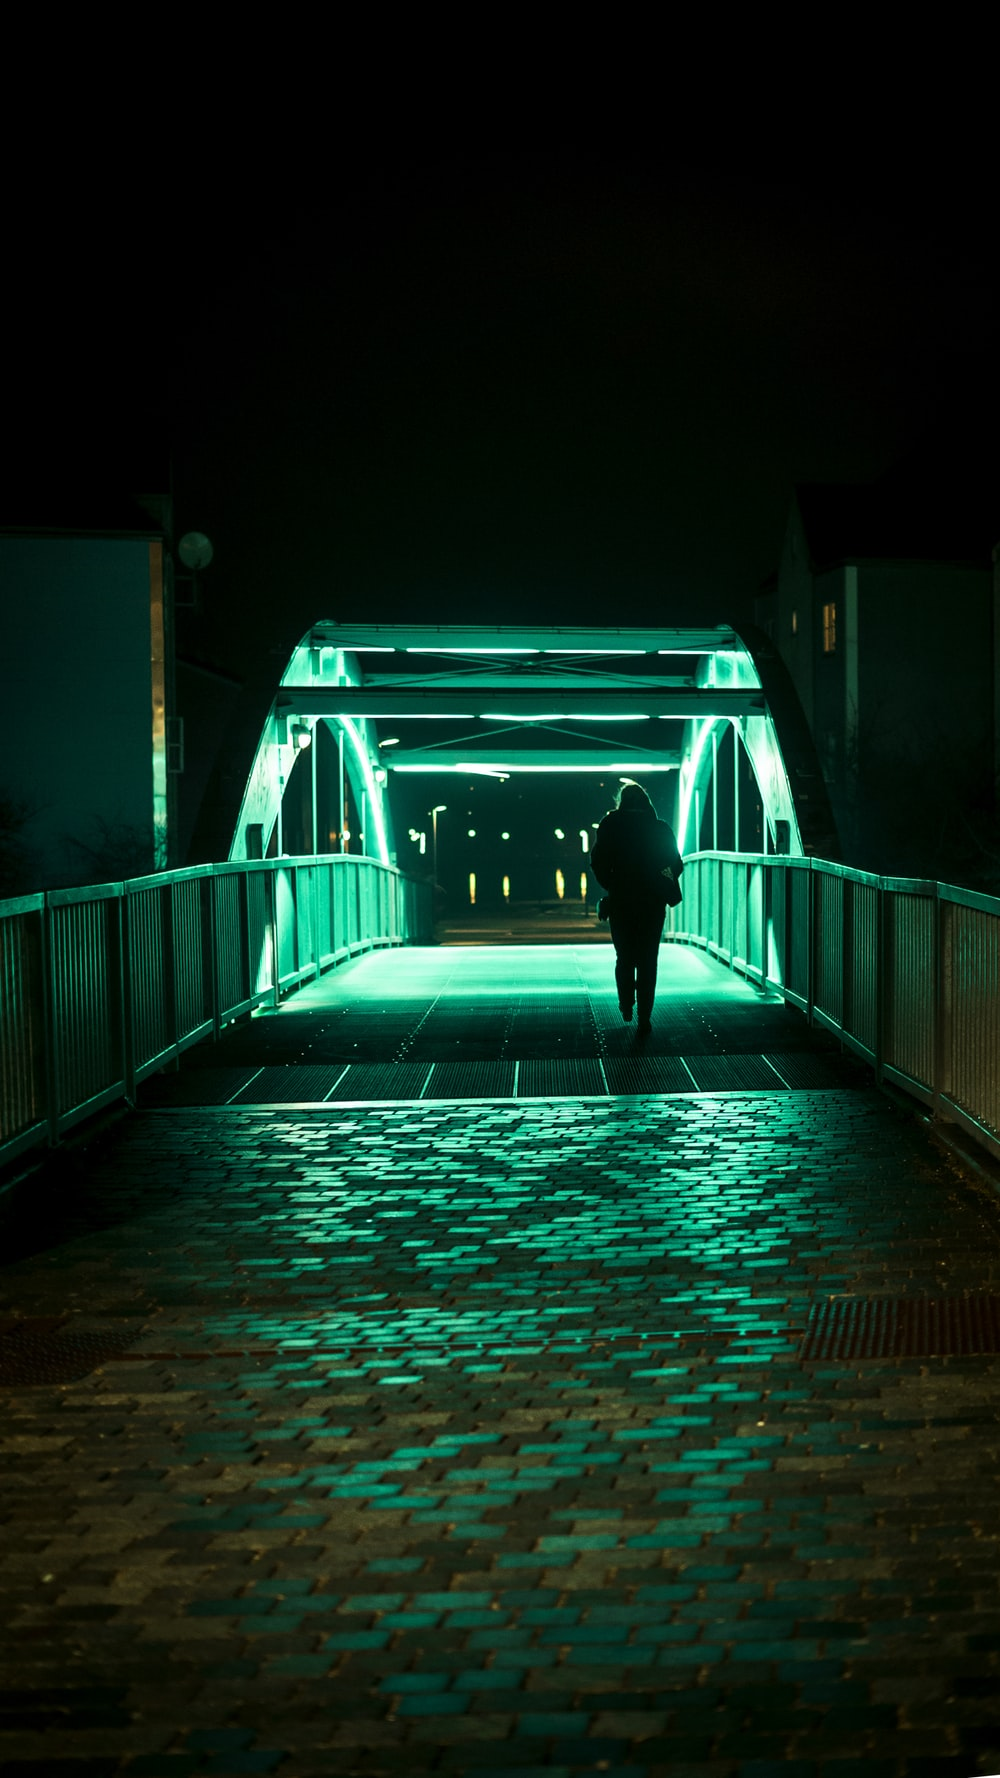 person passing alone on bridge during nighttime